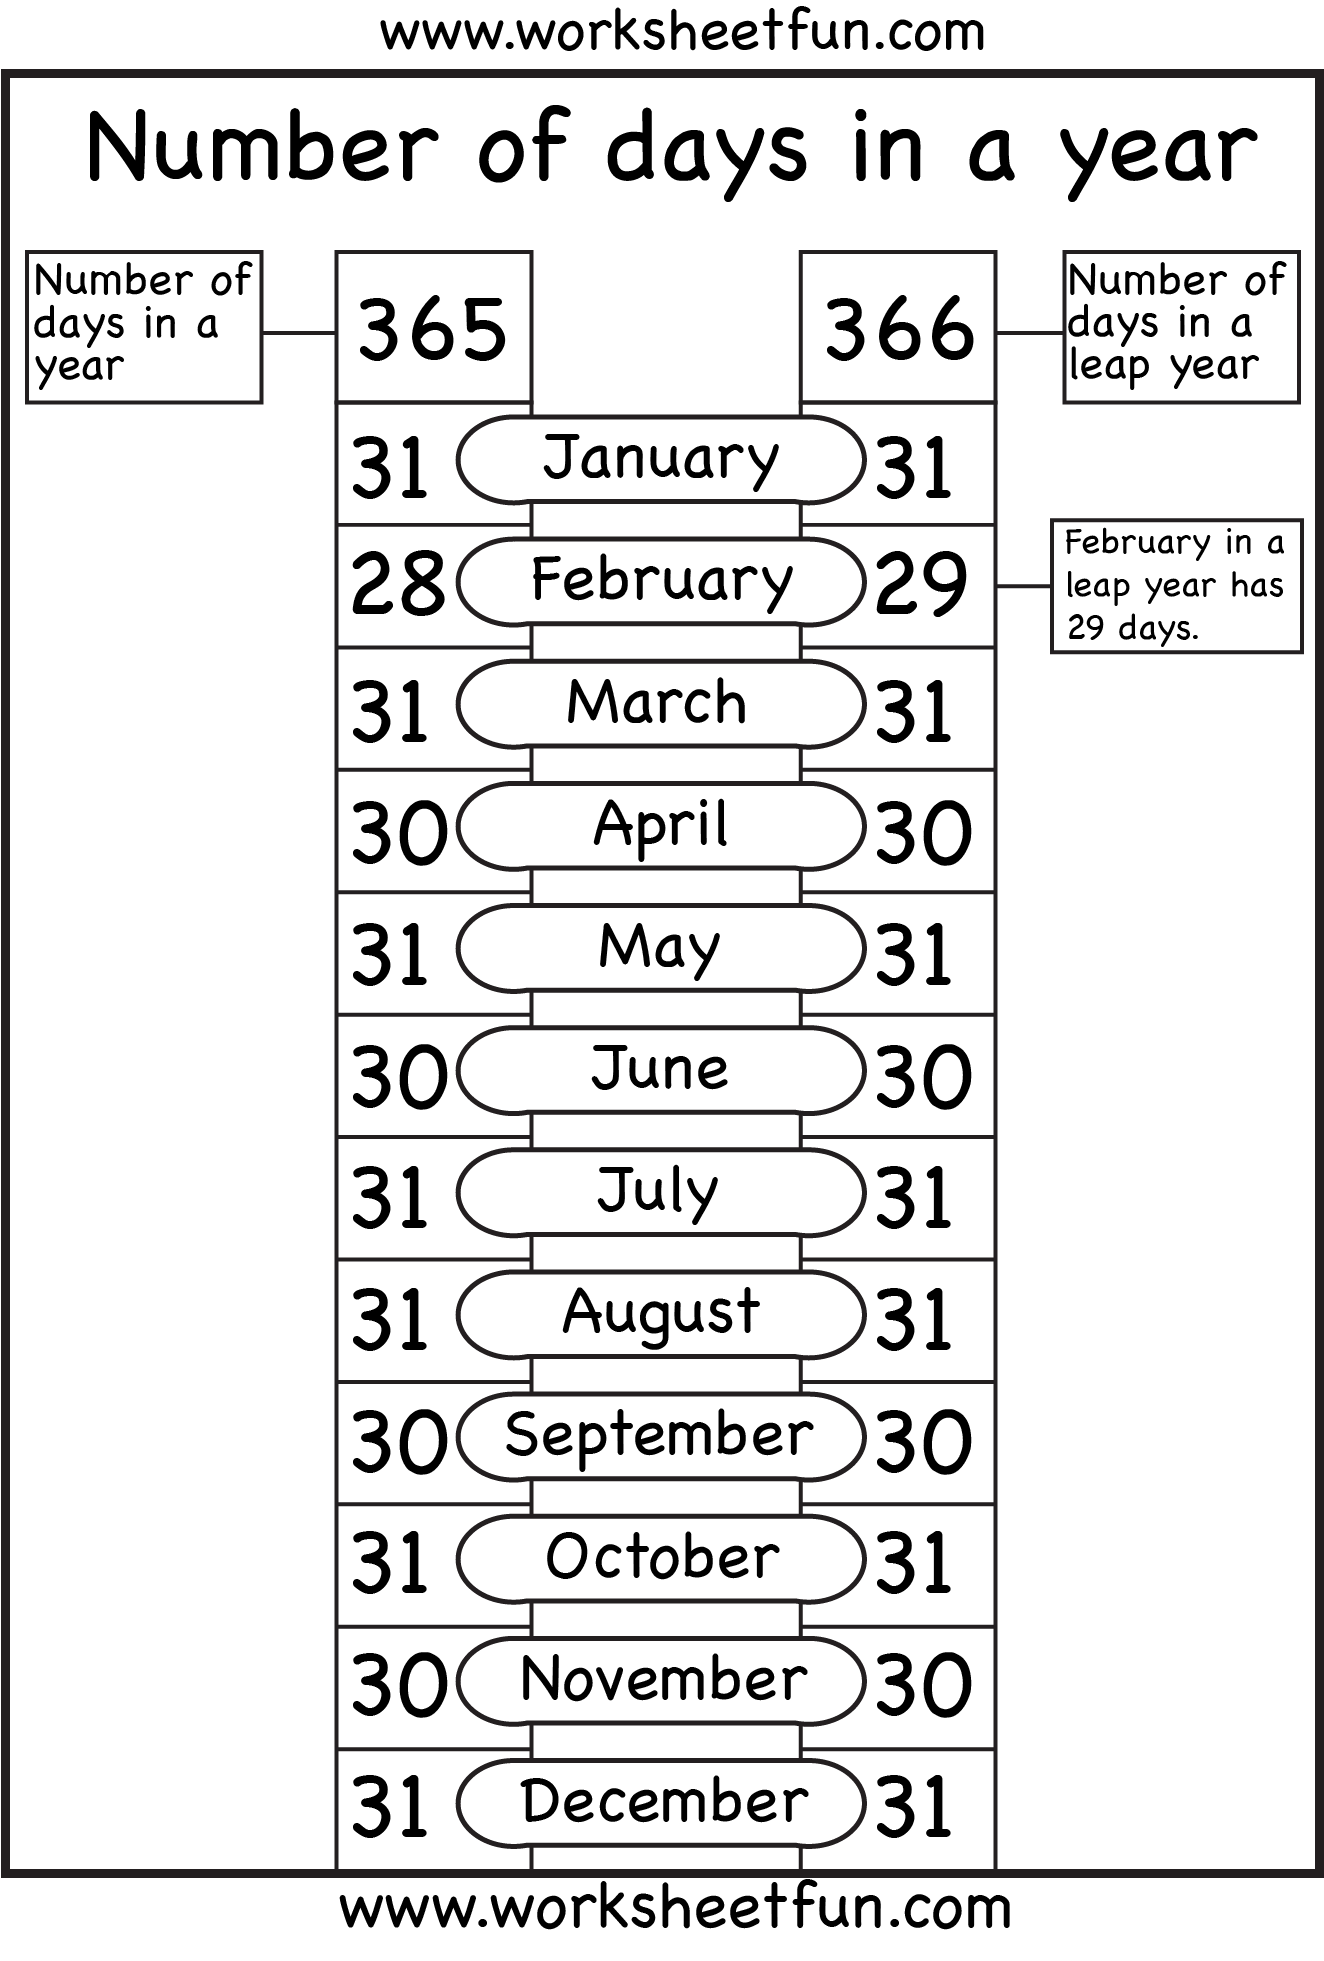 Months of the year - Number of days in a year | Printable Worksheets ...